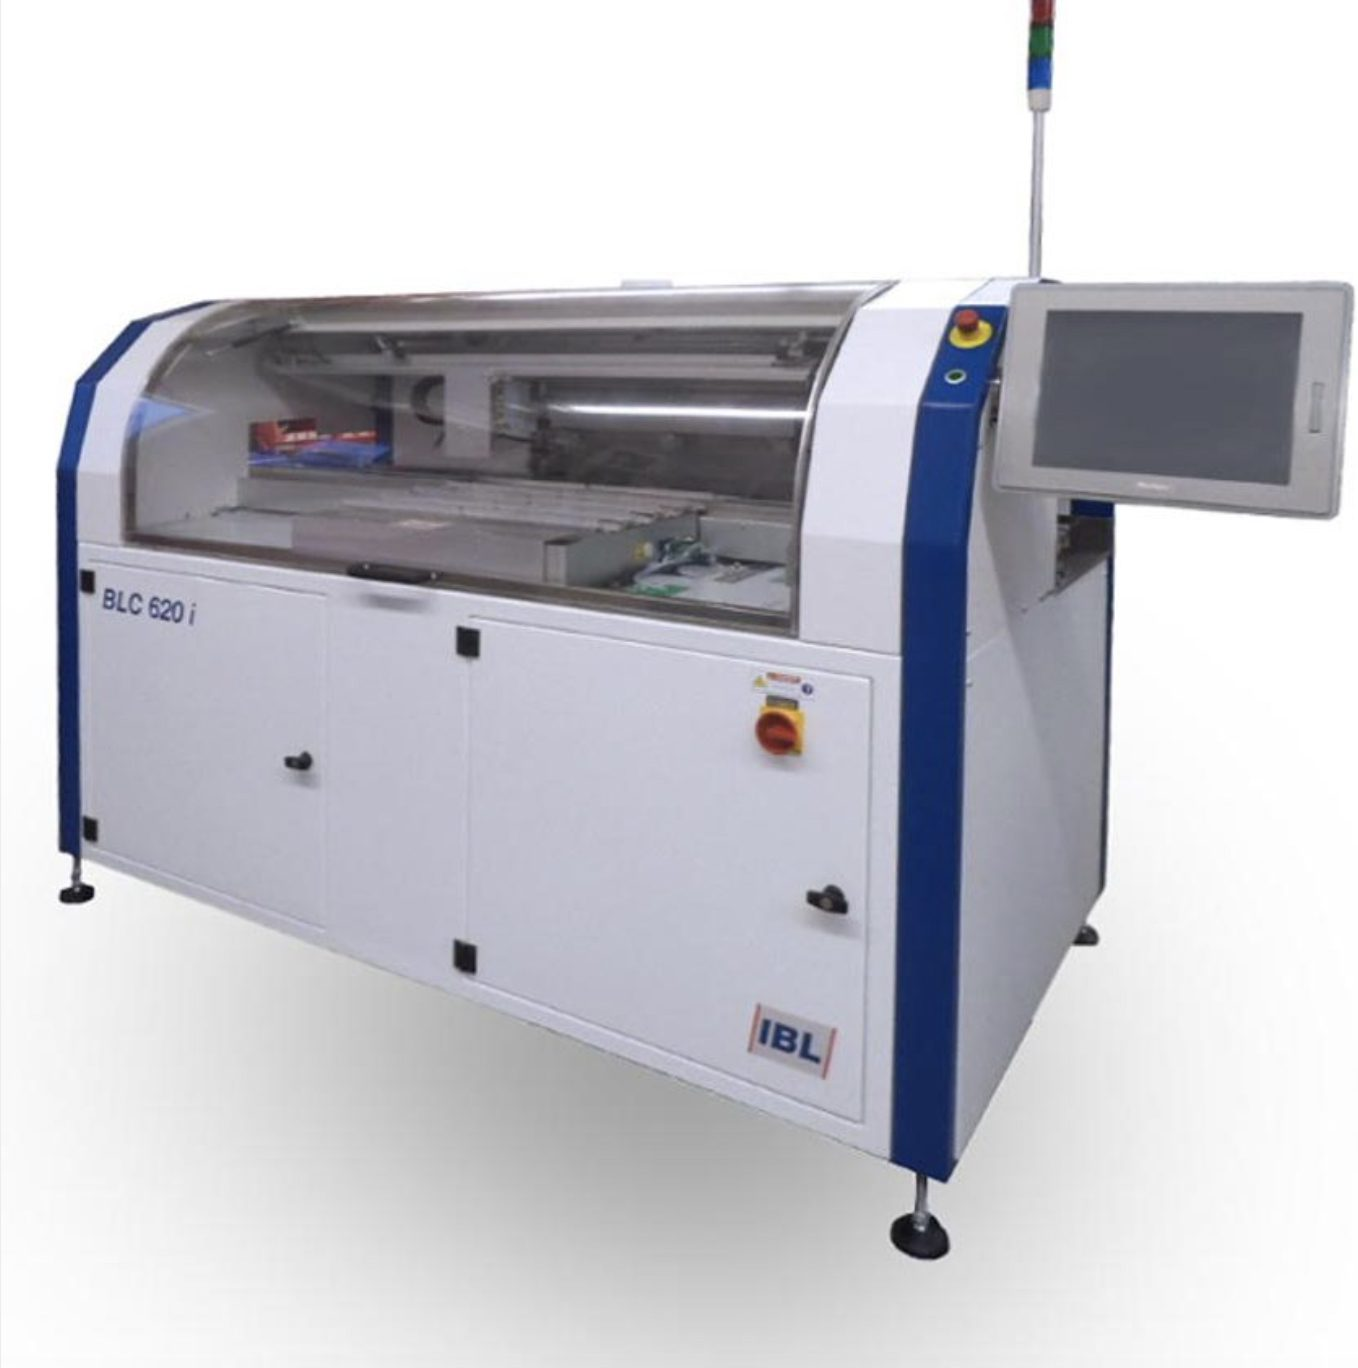 SPEEDBOARD INVESTS IN VAPOUR PHASE SOLDERING FROM BLUNDELL